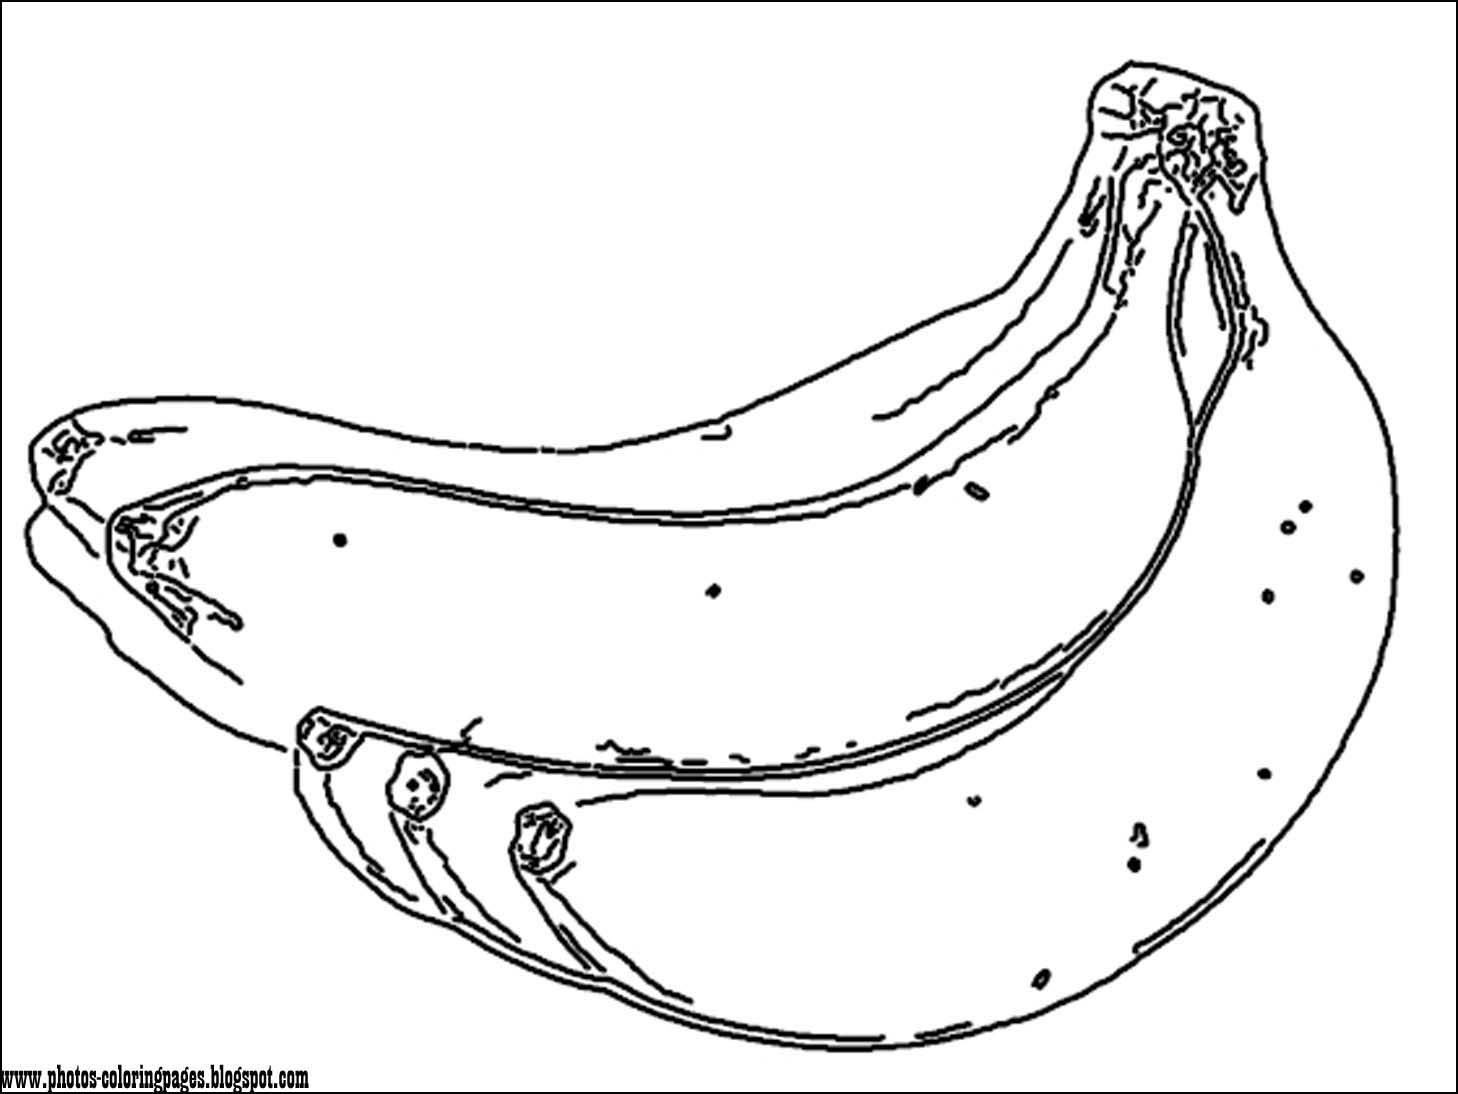 the cartoon coloring pages photos coloring page of most common fruits